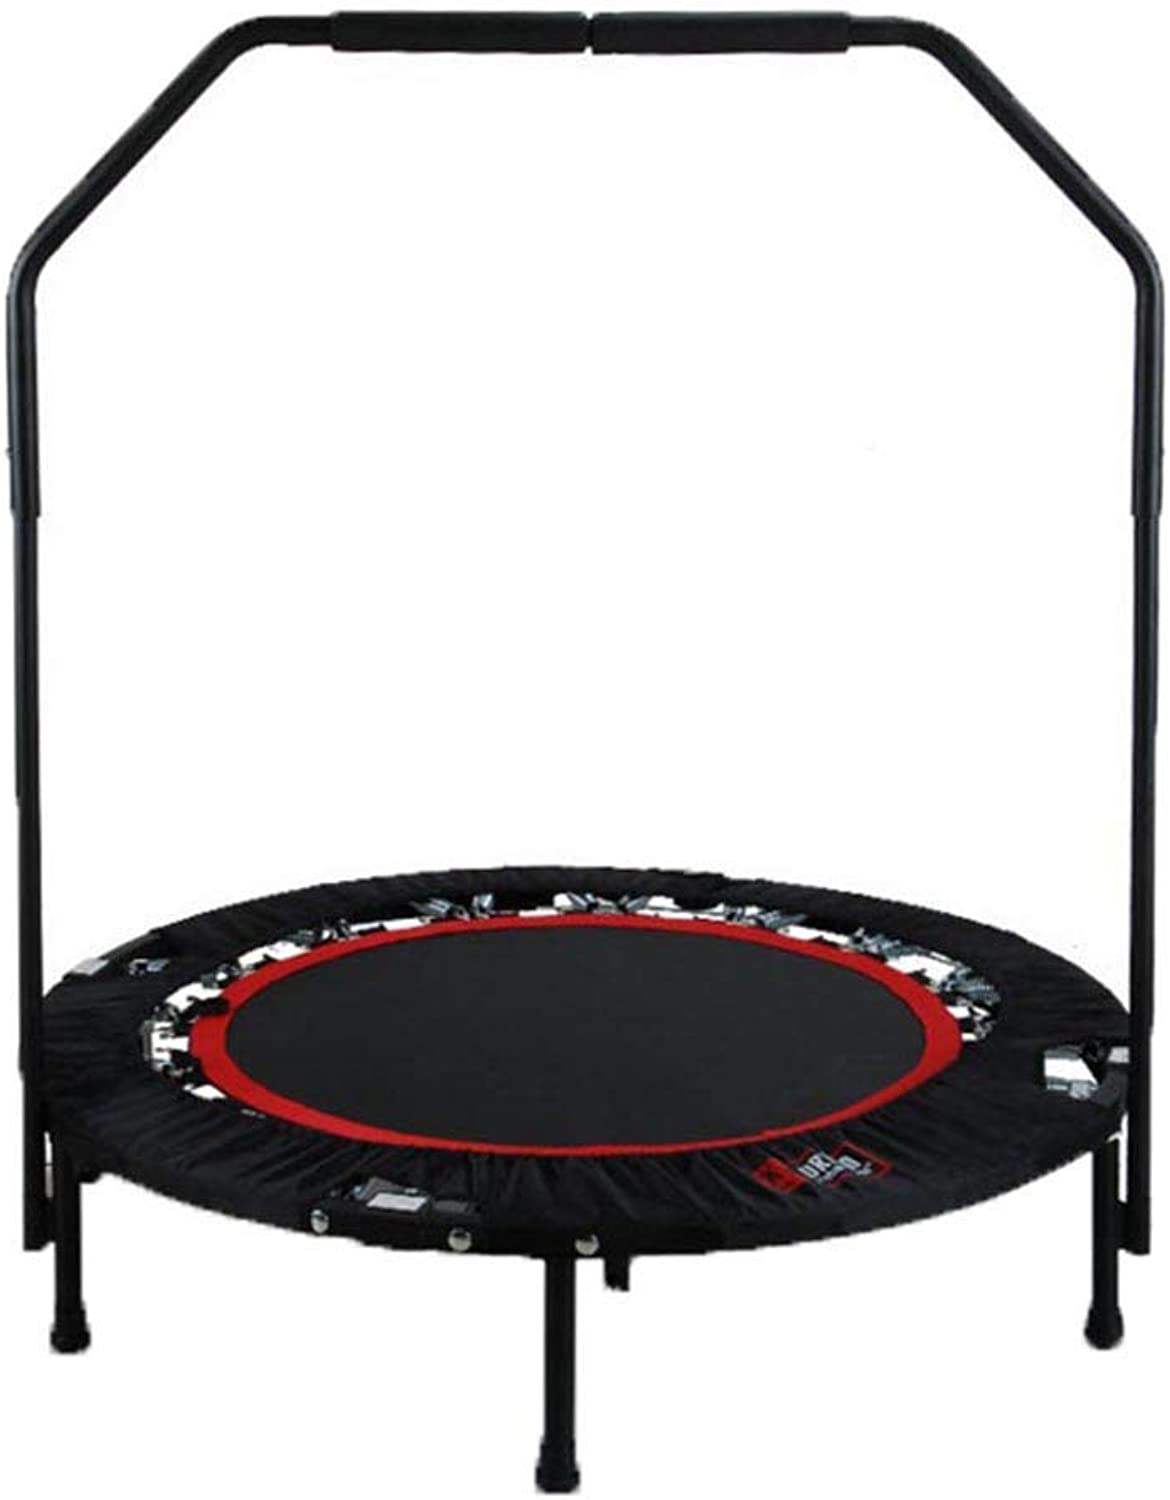 Kimanli Household Folding Trampoline Gym Commercial Bounce Bed Adult Round Fitness Bed